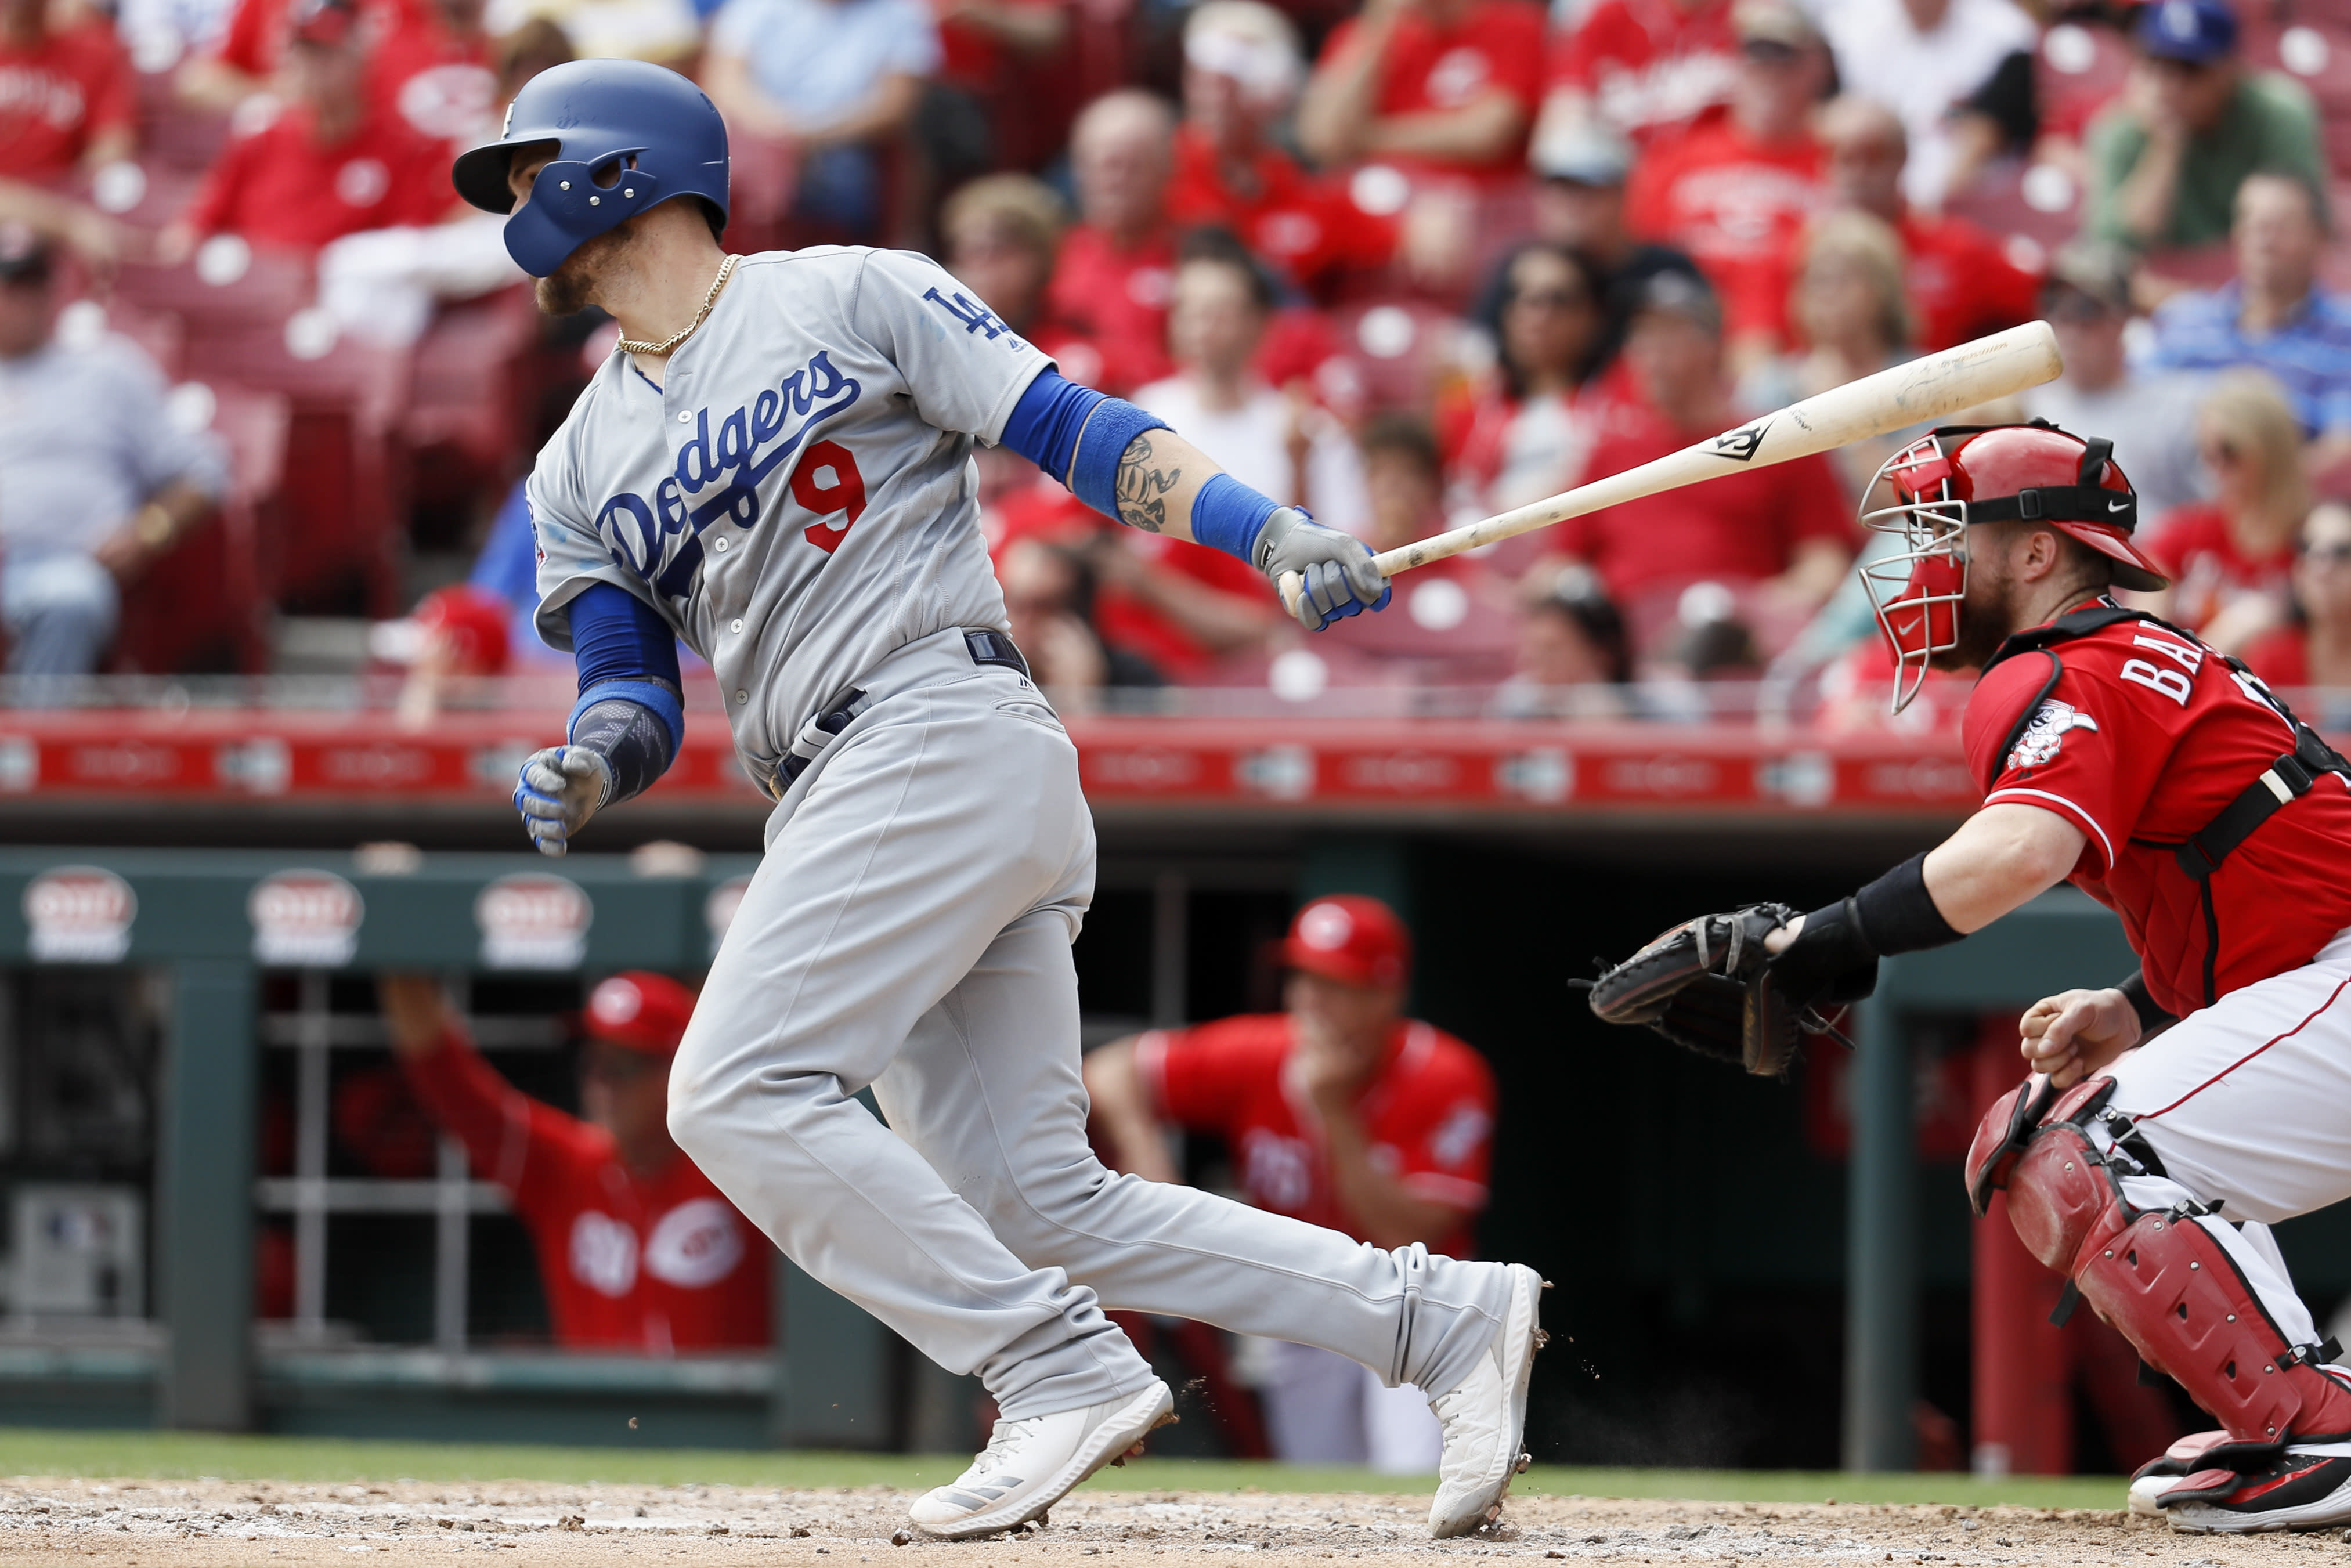 After passing up $60 million offer from the Mets, free agent catcher Yasmani Grandal signs one-year, $18.25 million deal with Brewers. (AP)